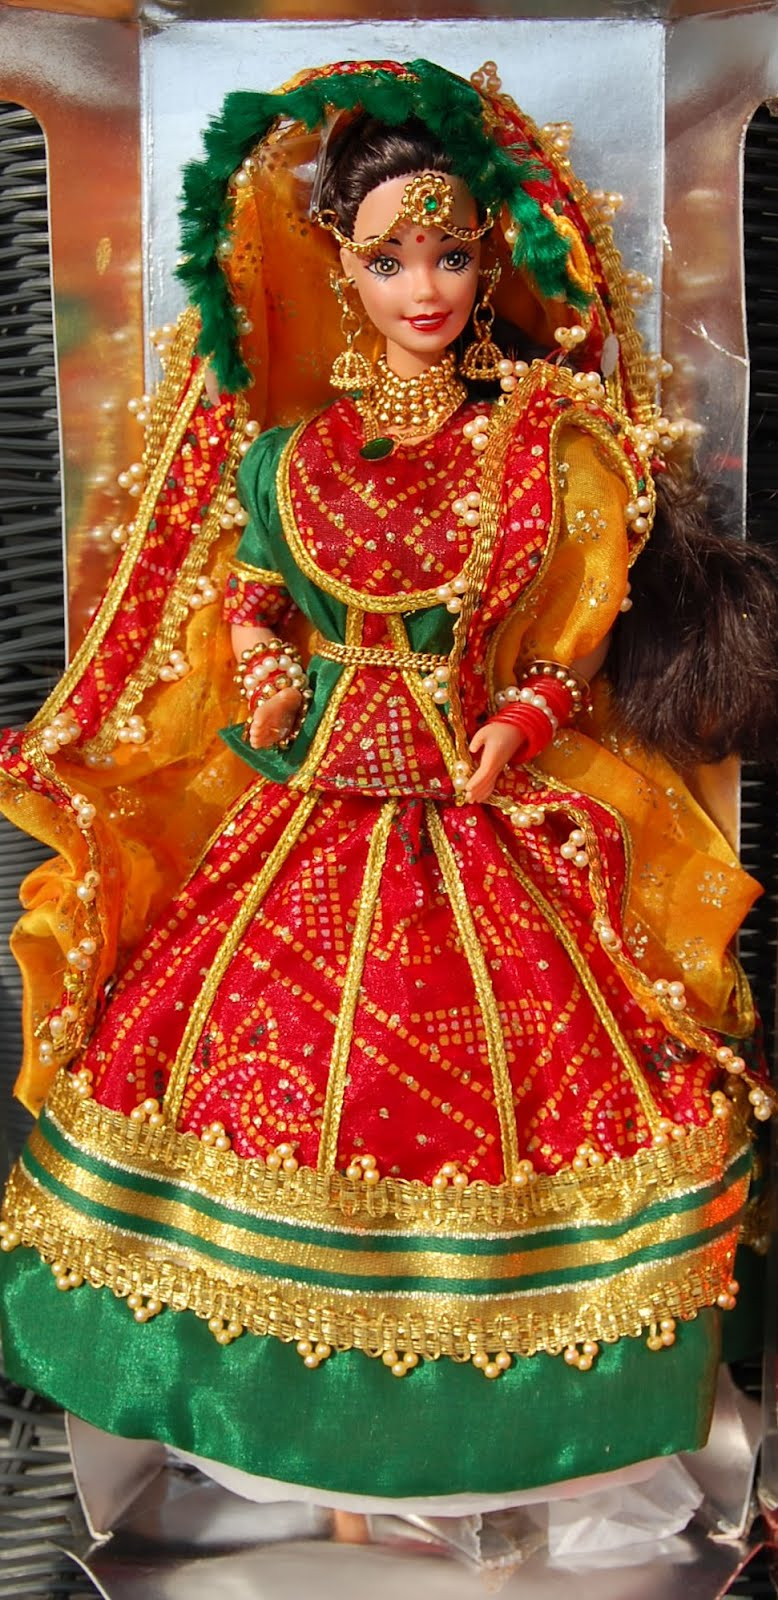 dolls collector club: Barbie Expression of India - poze ...